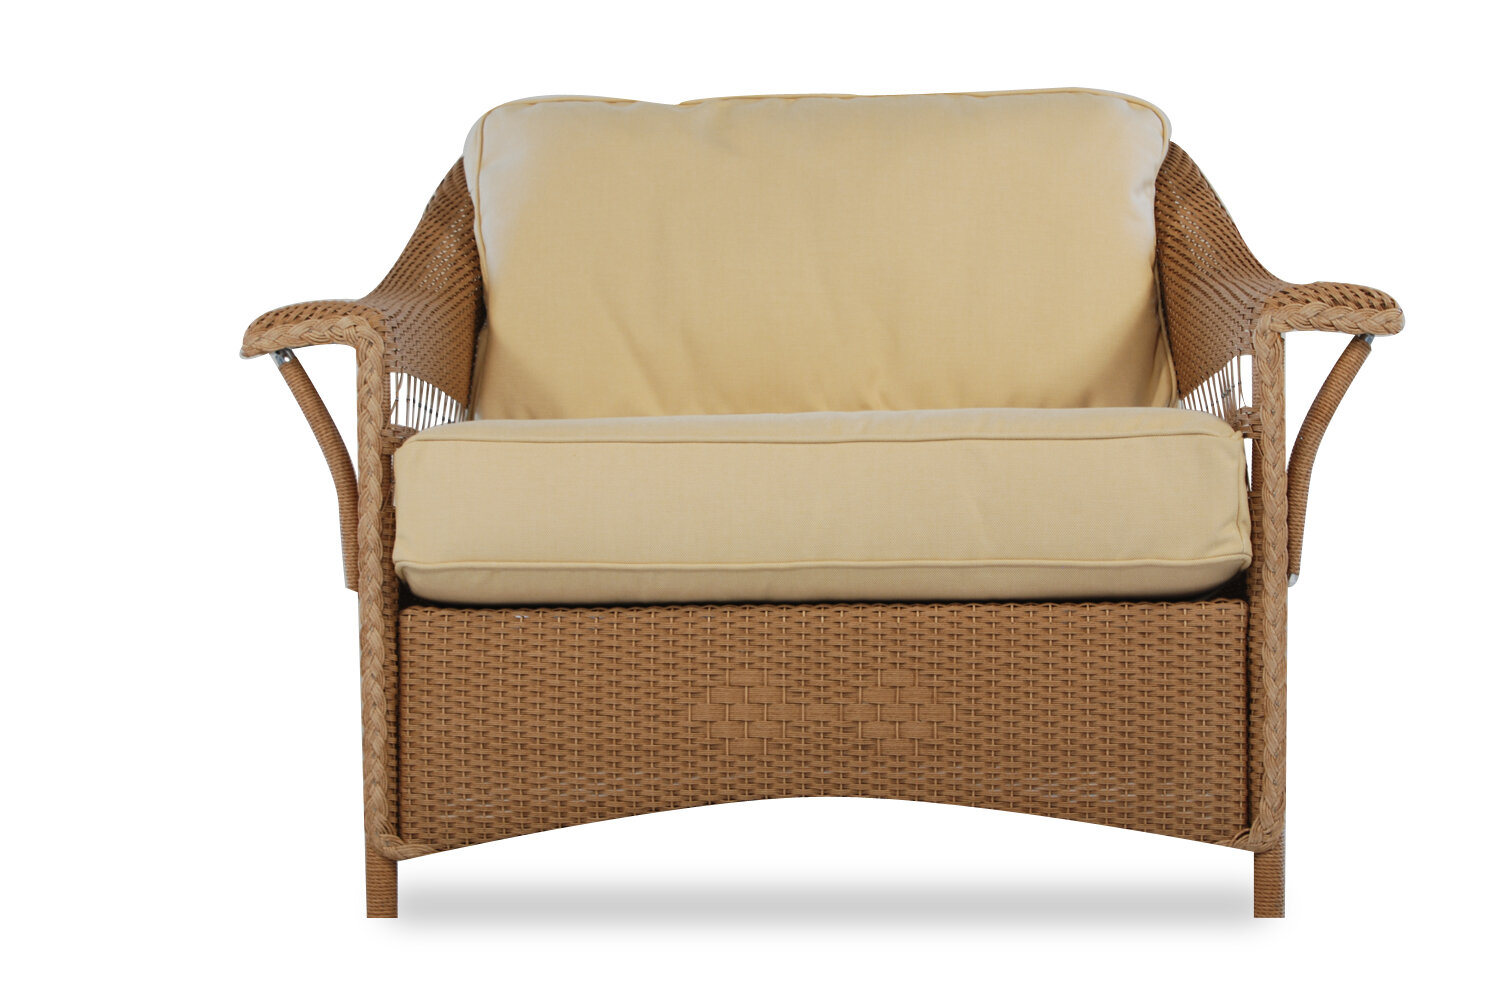 Nantucket Patio Chair With Cushions